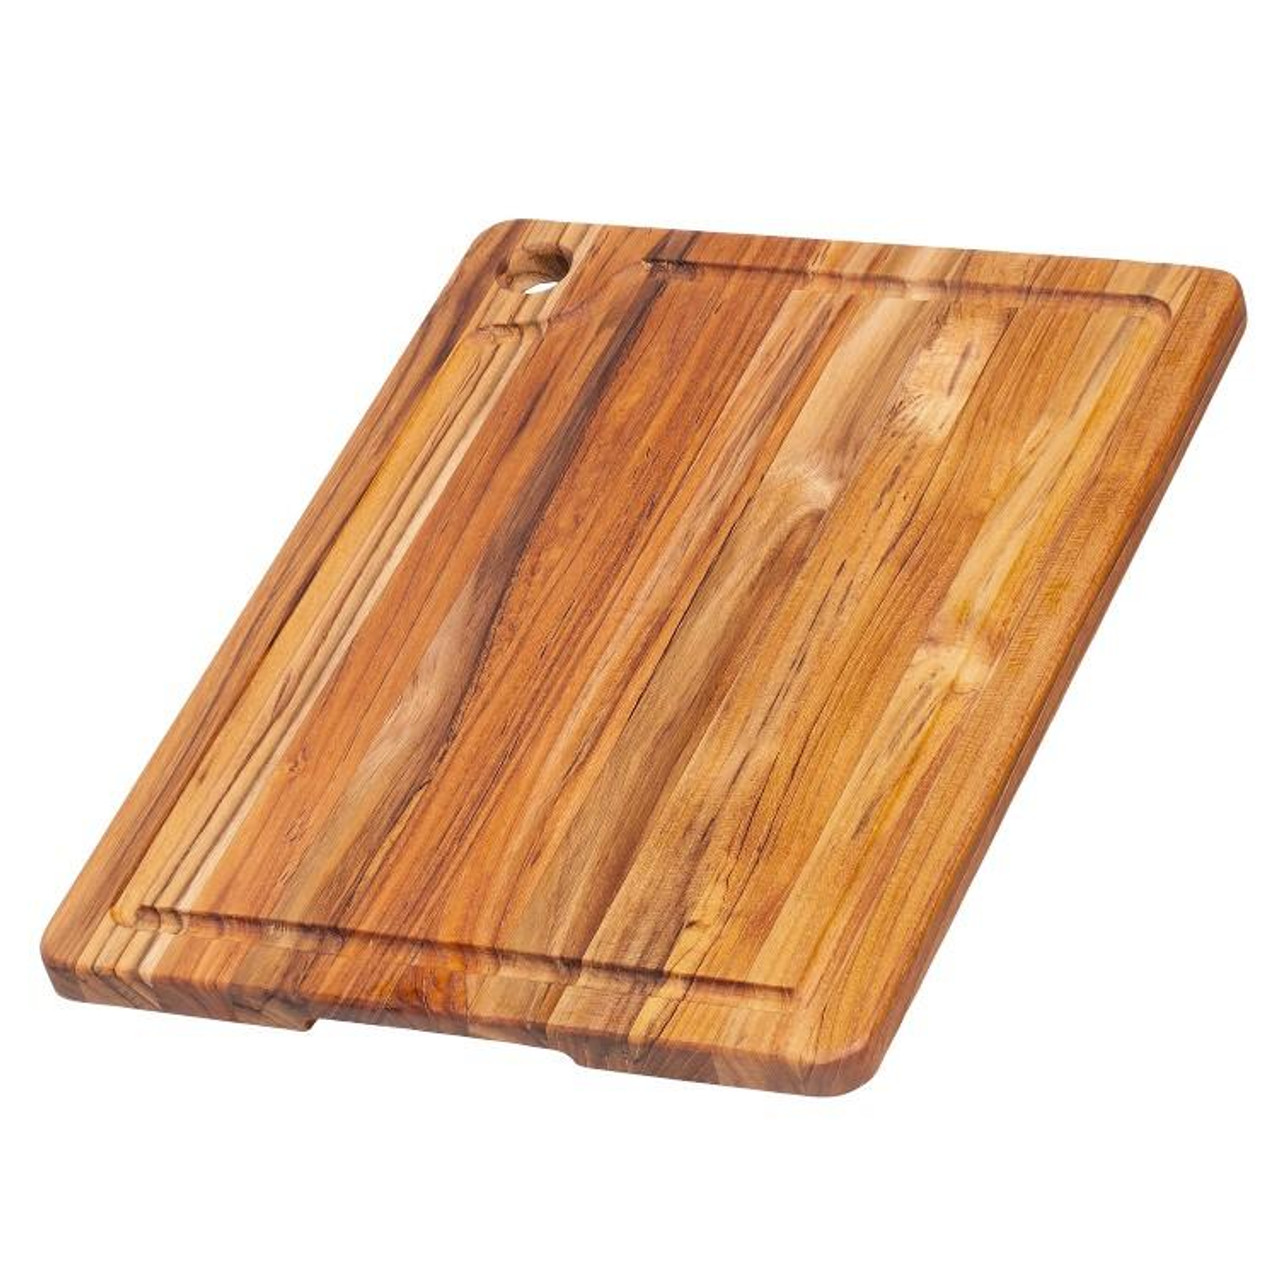 TEAKHAUS CUTTING BOARD CORNER HOLE JUICE GROOVE 16x12